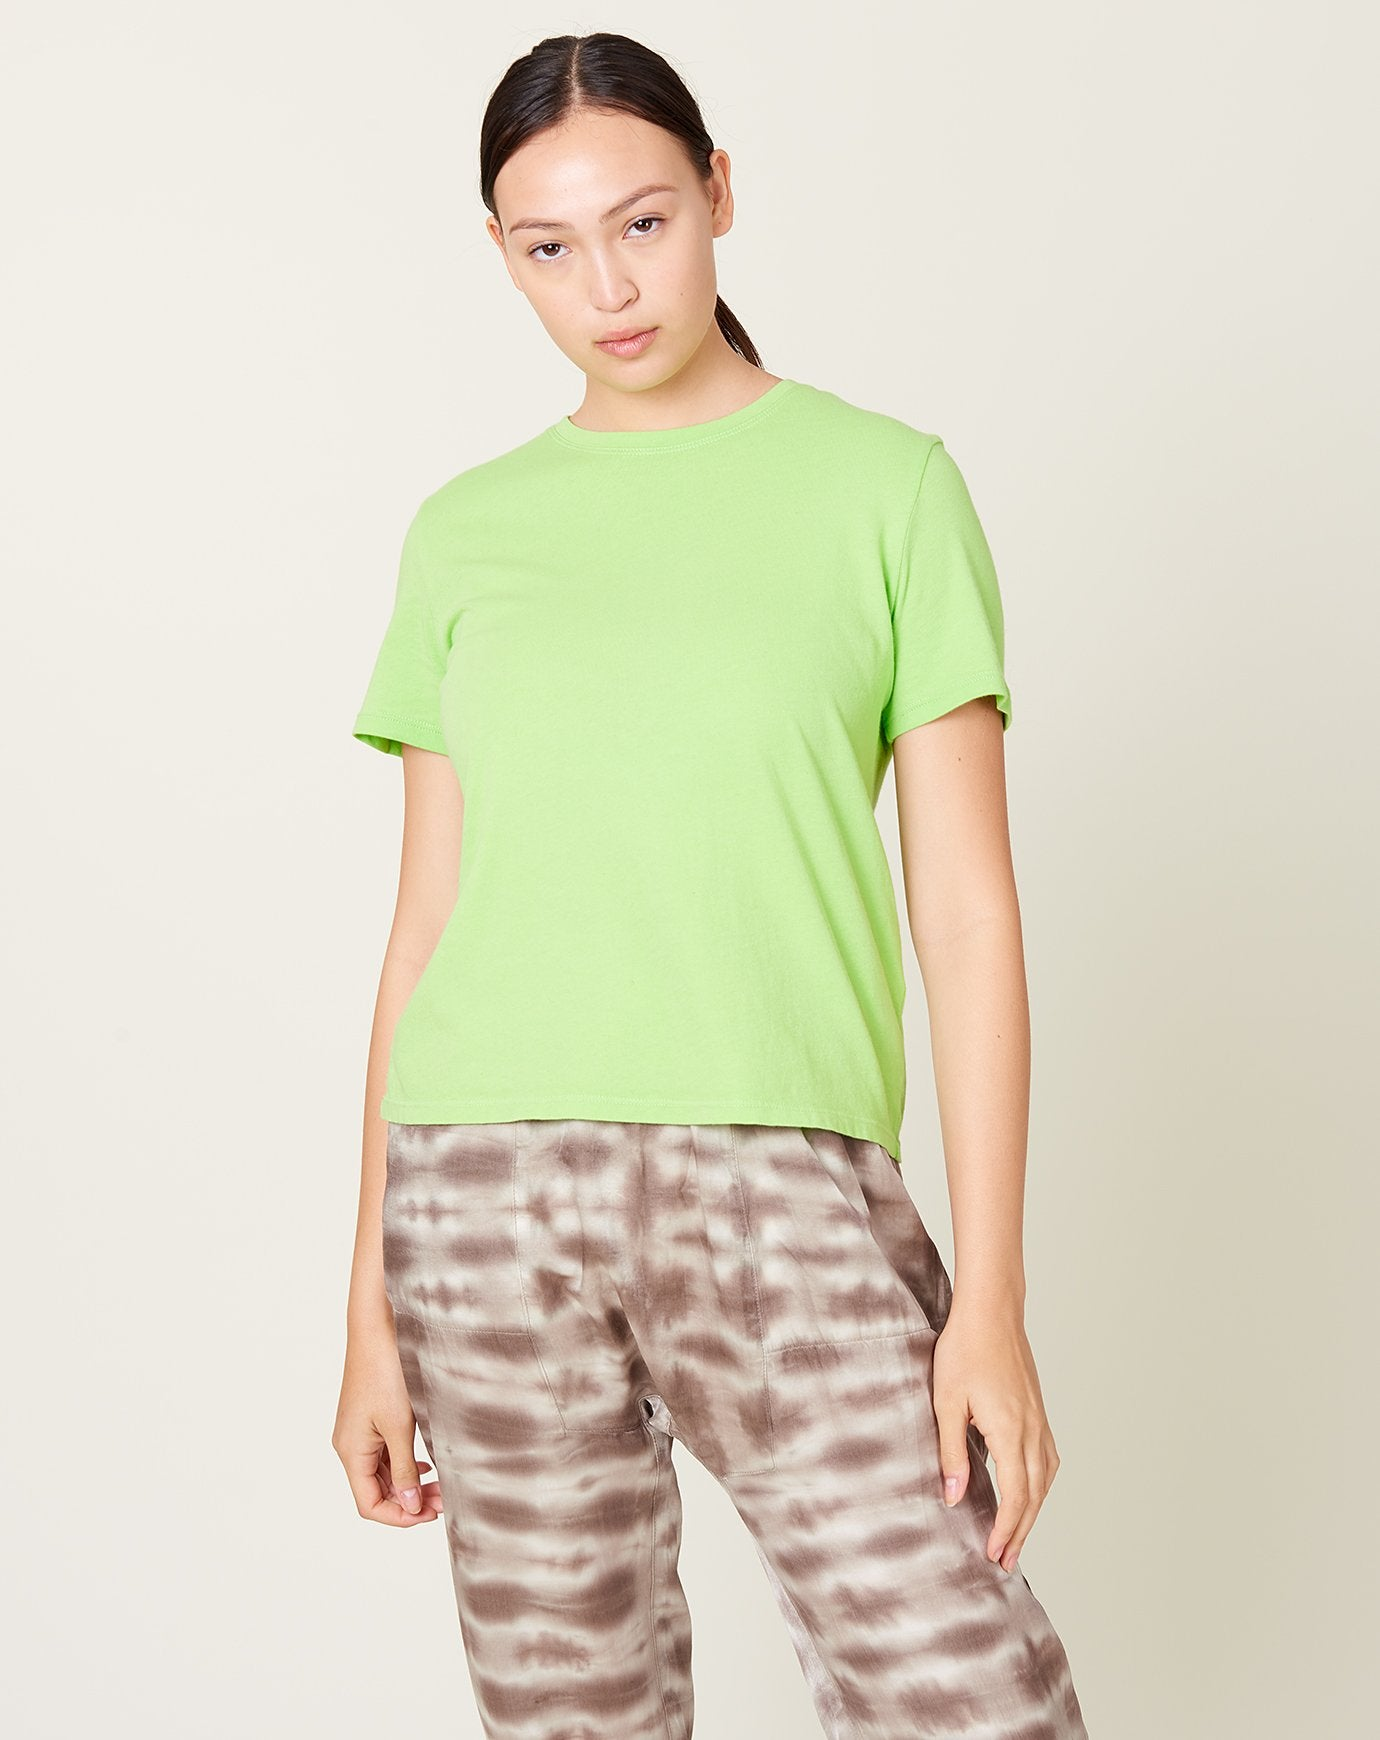 Boy Tee in Lime Green